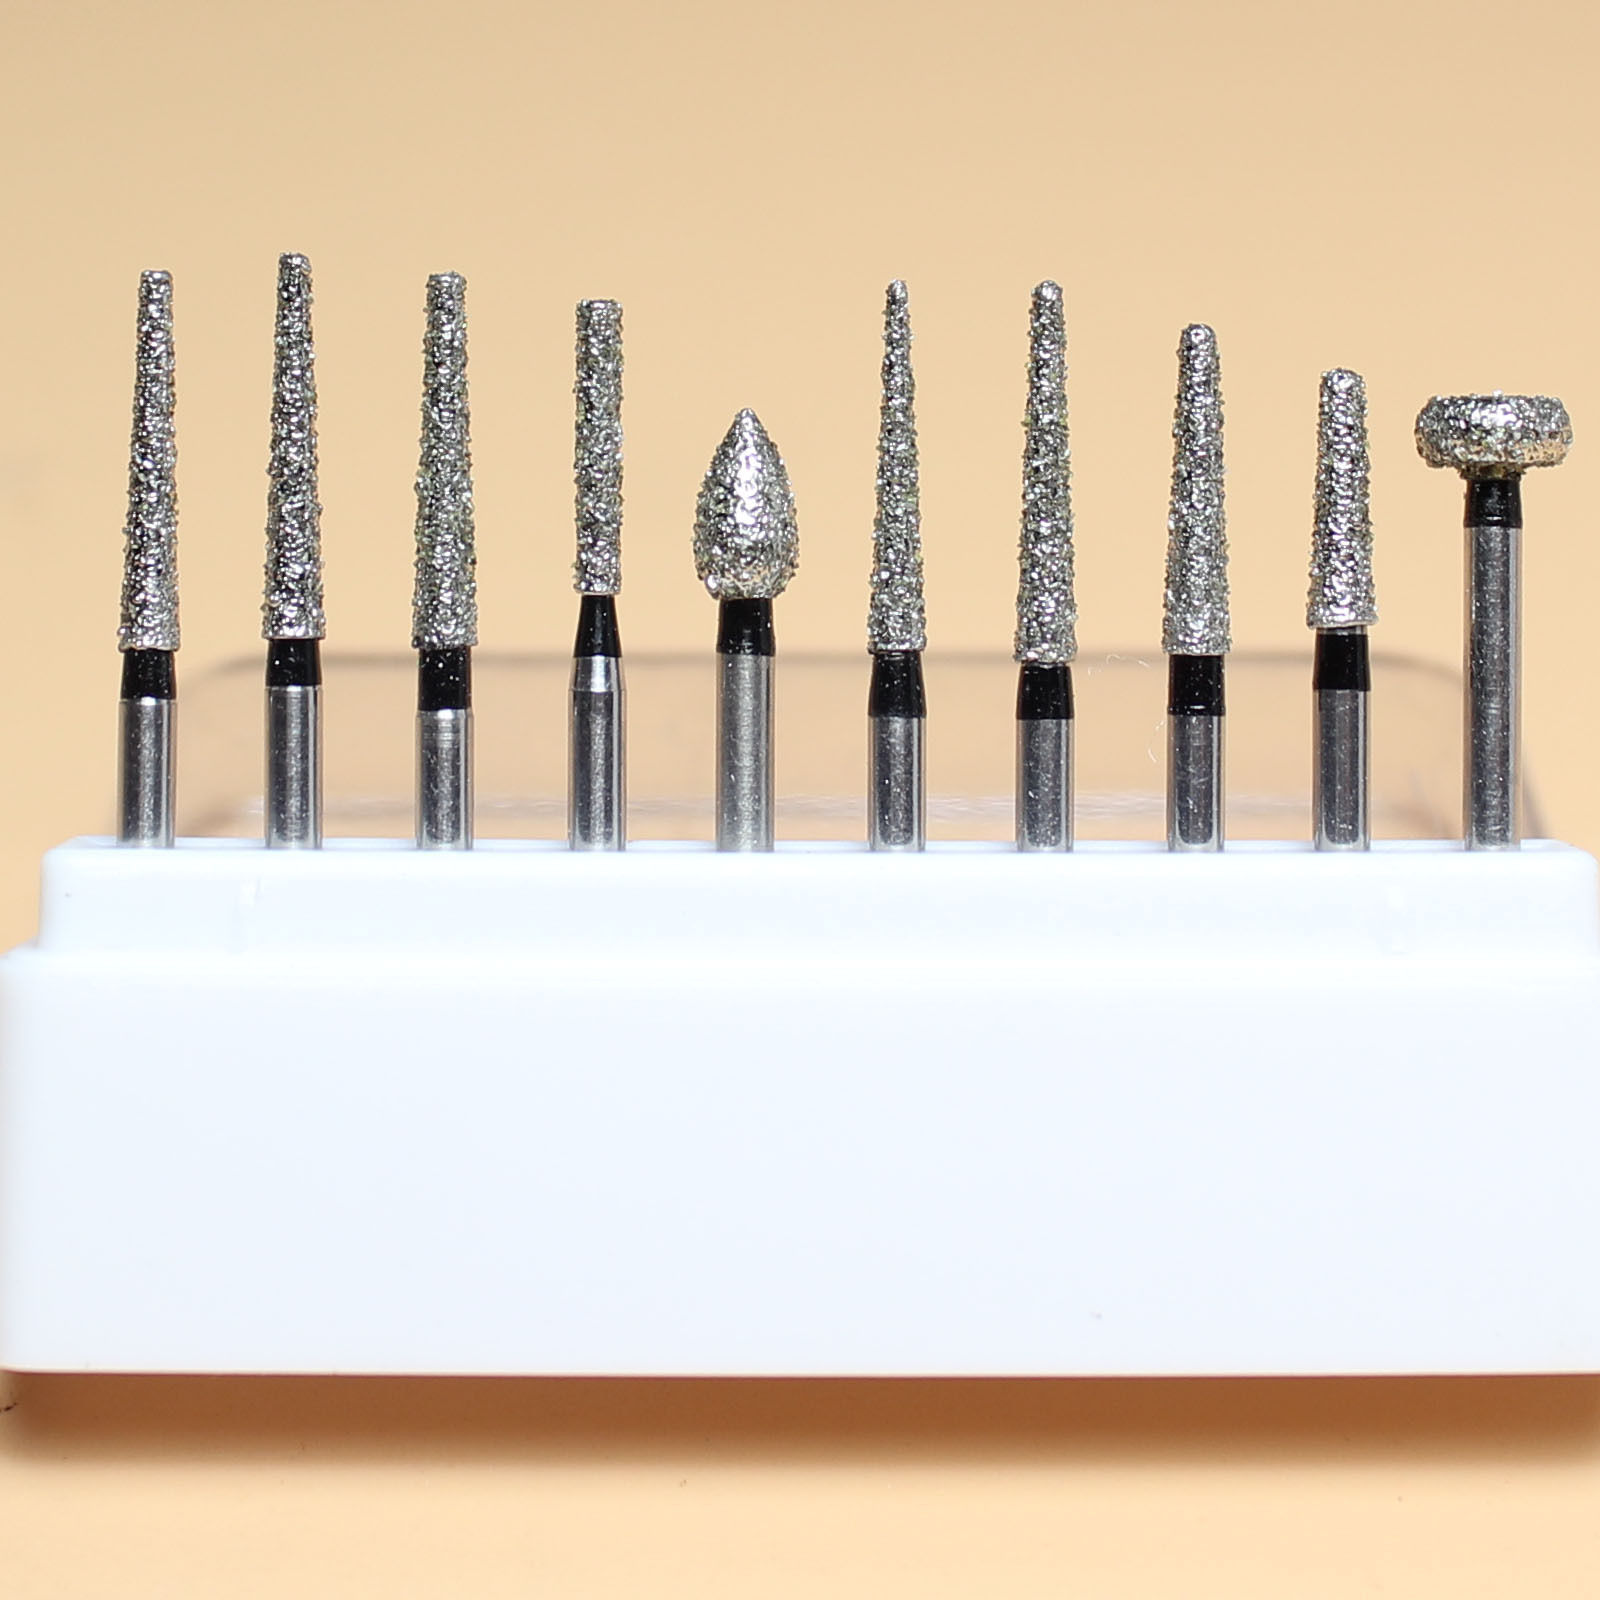 Dental Black Diamond Burs Drill Kit Gingiva Protection High Quality E# Lus